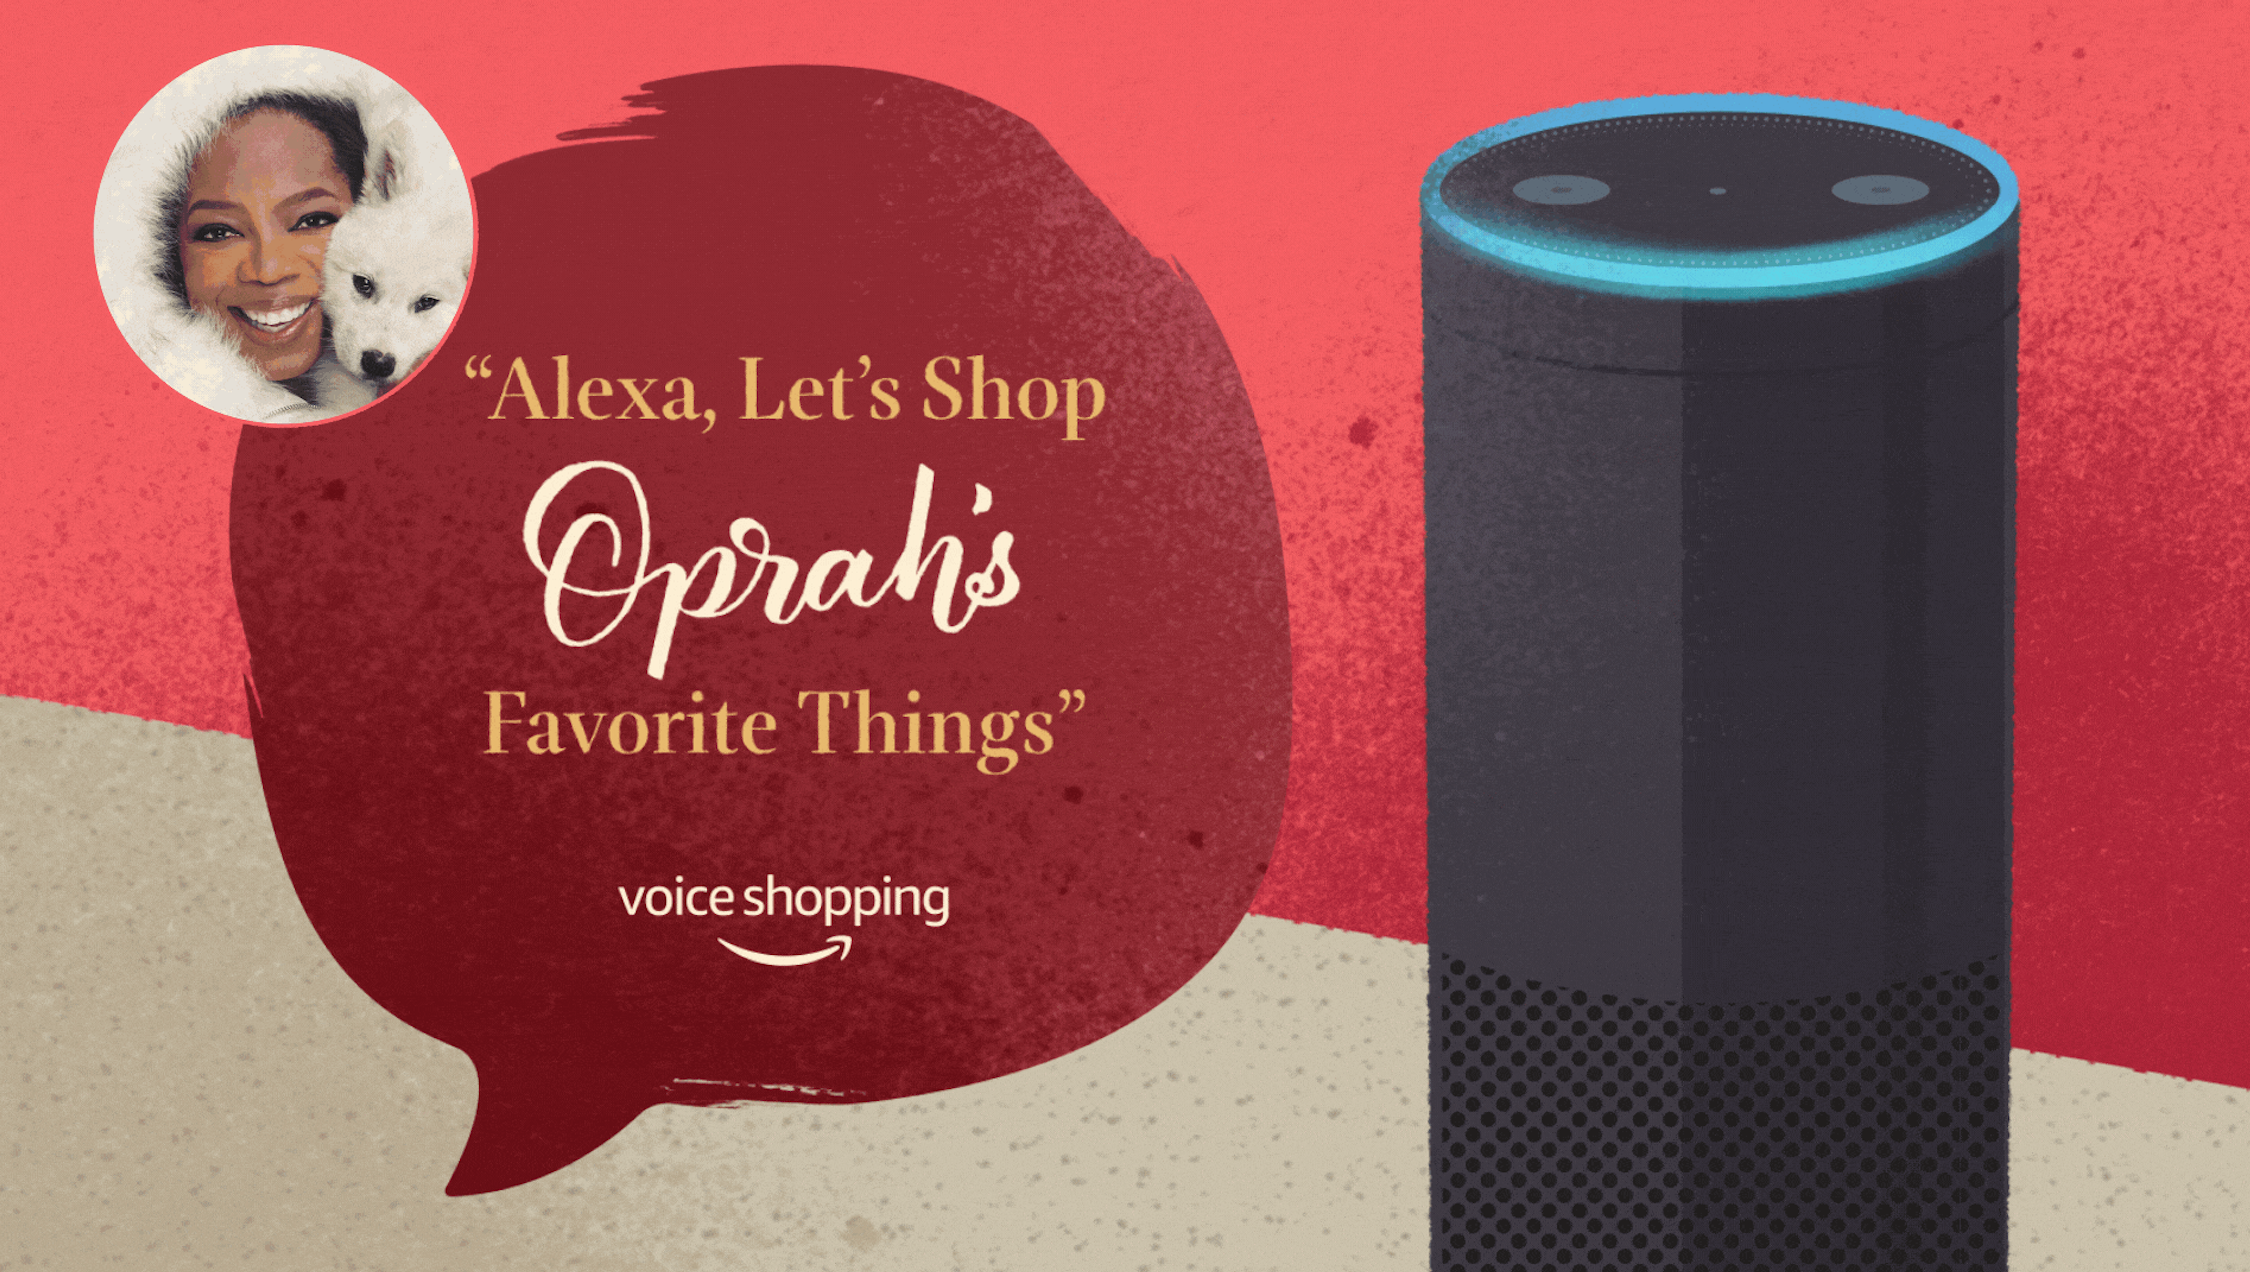 viventium-design-zac-kraemer-oprah-amazon-alexa-retail-design-2.png